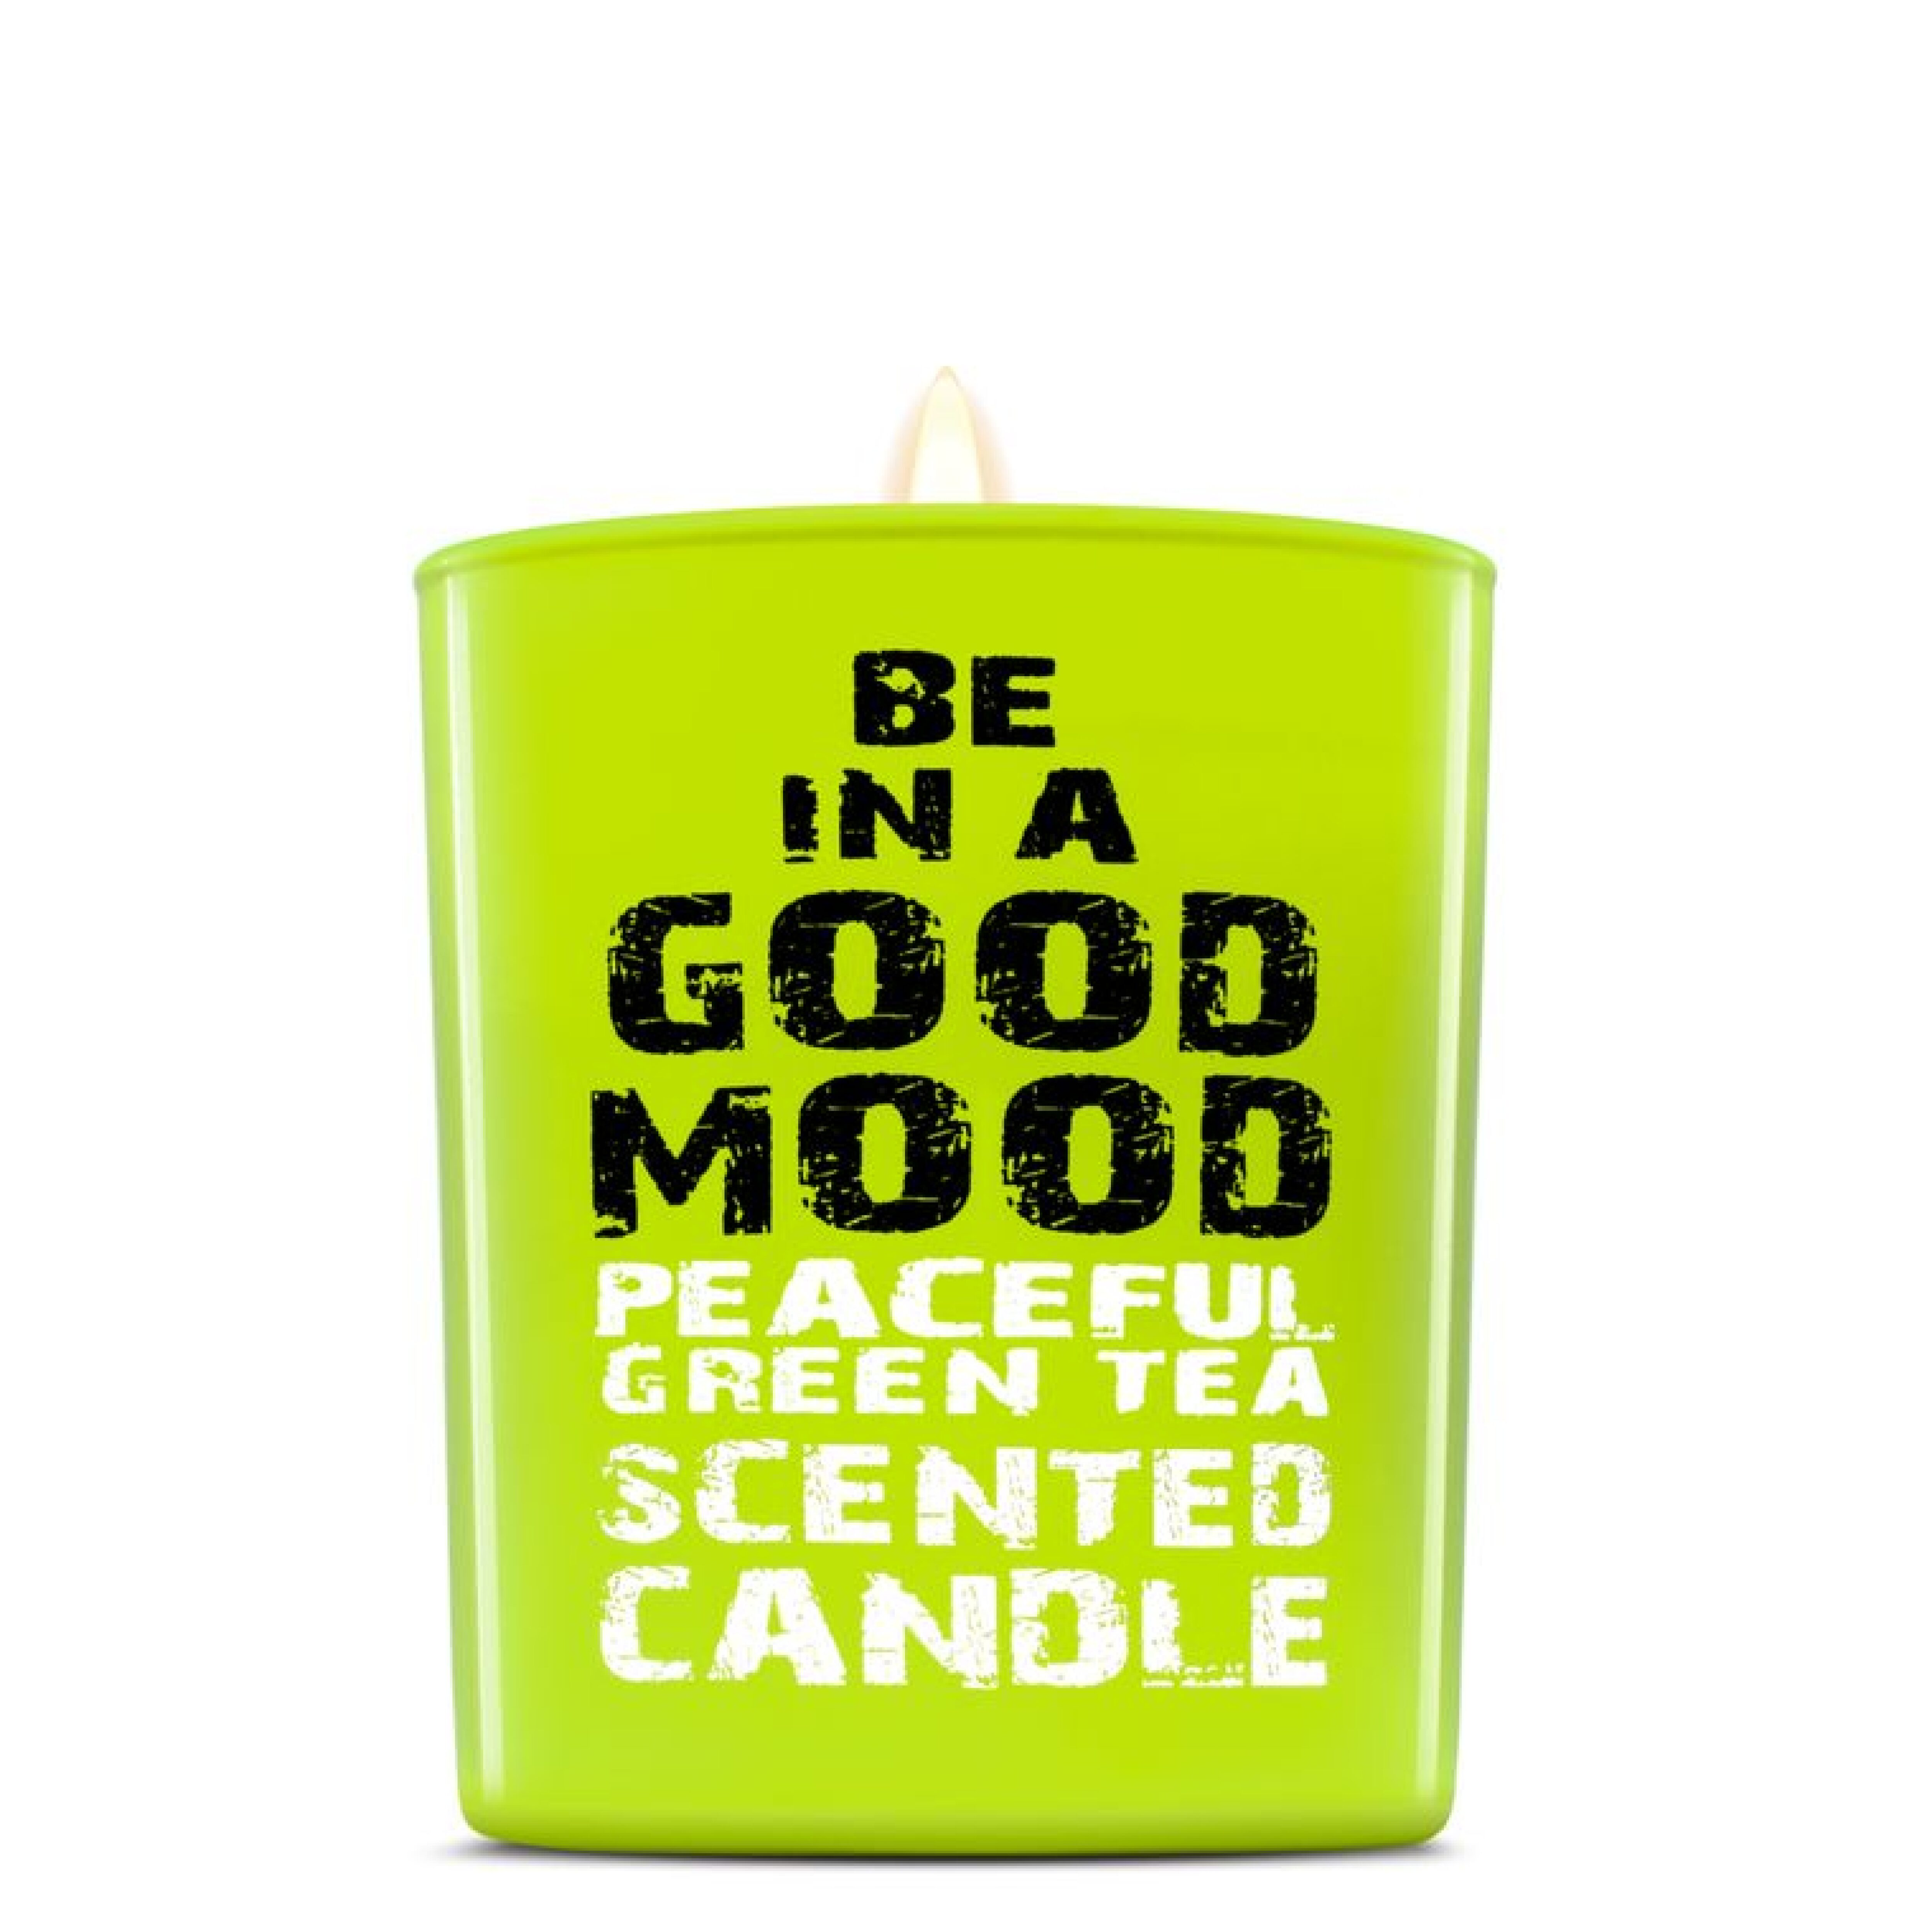 Be In A Good Mood Peaceful Scented Candle